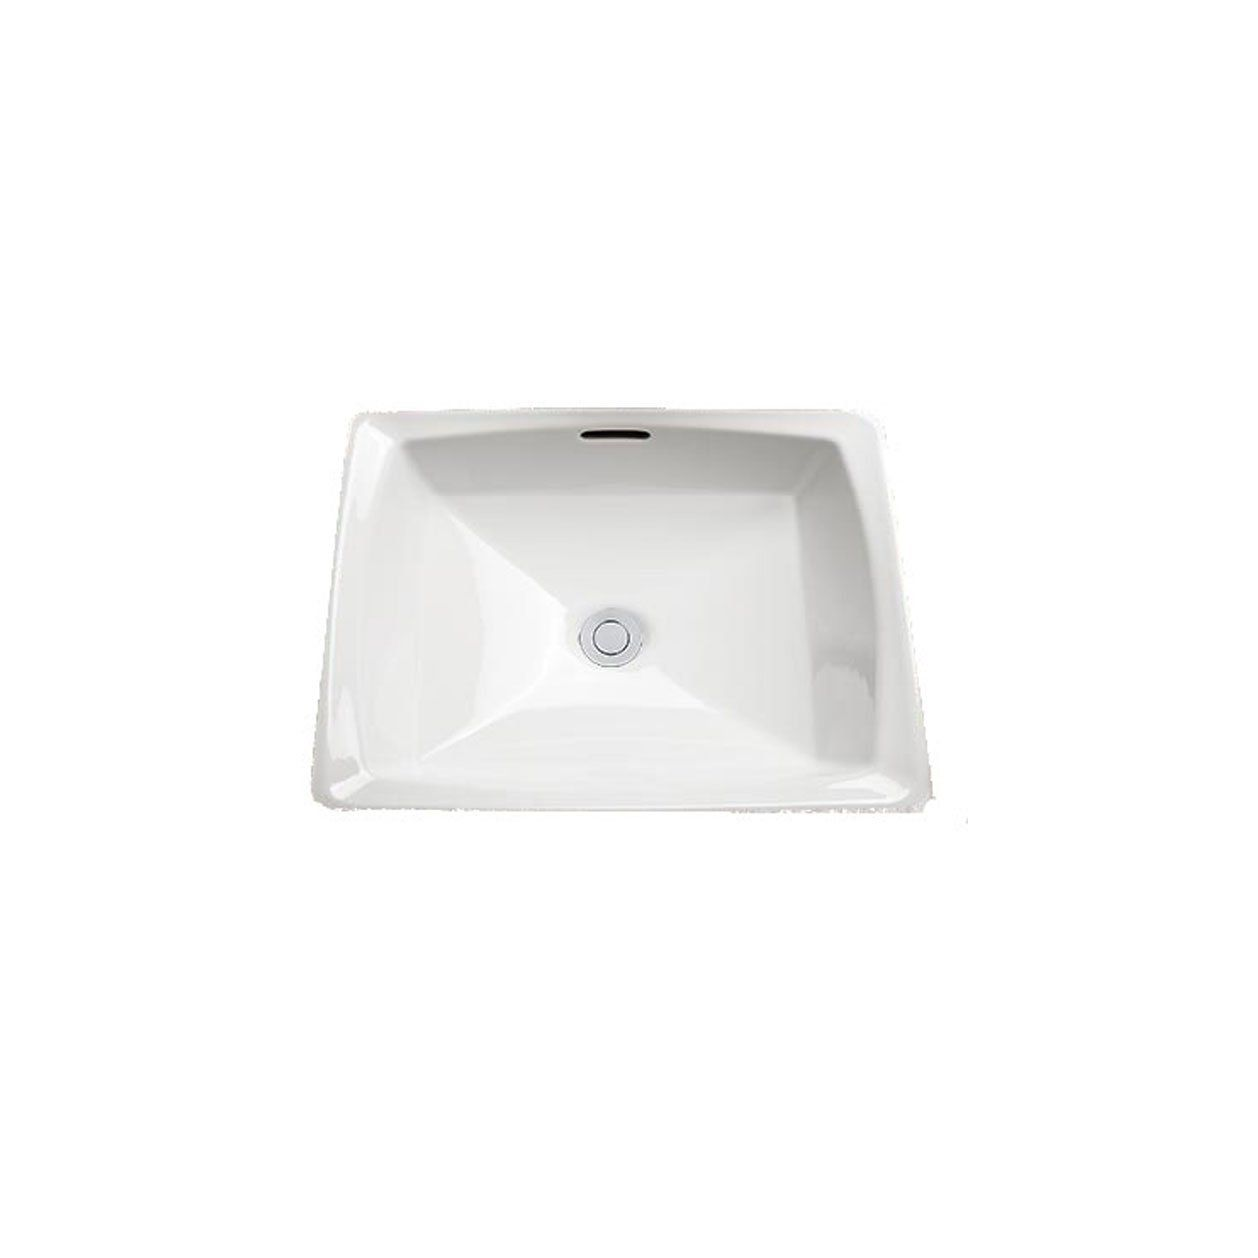 Toto Lt491g 1 Connelly Vitreous China Undermount Square Bathroom Sink 17 L X 17 W X 7 5 H Colonial White Square Bathroom Sink Sink Bathroom Sink